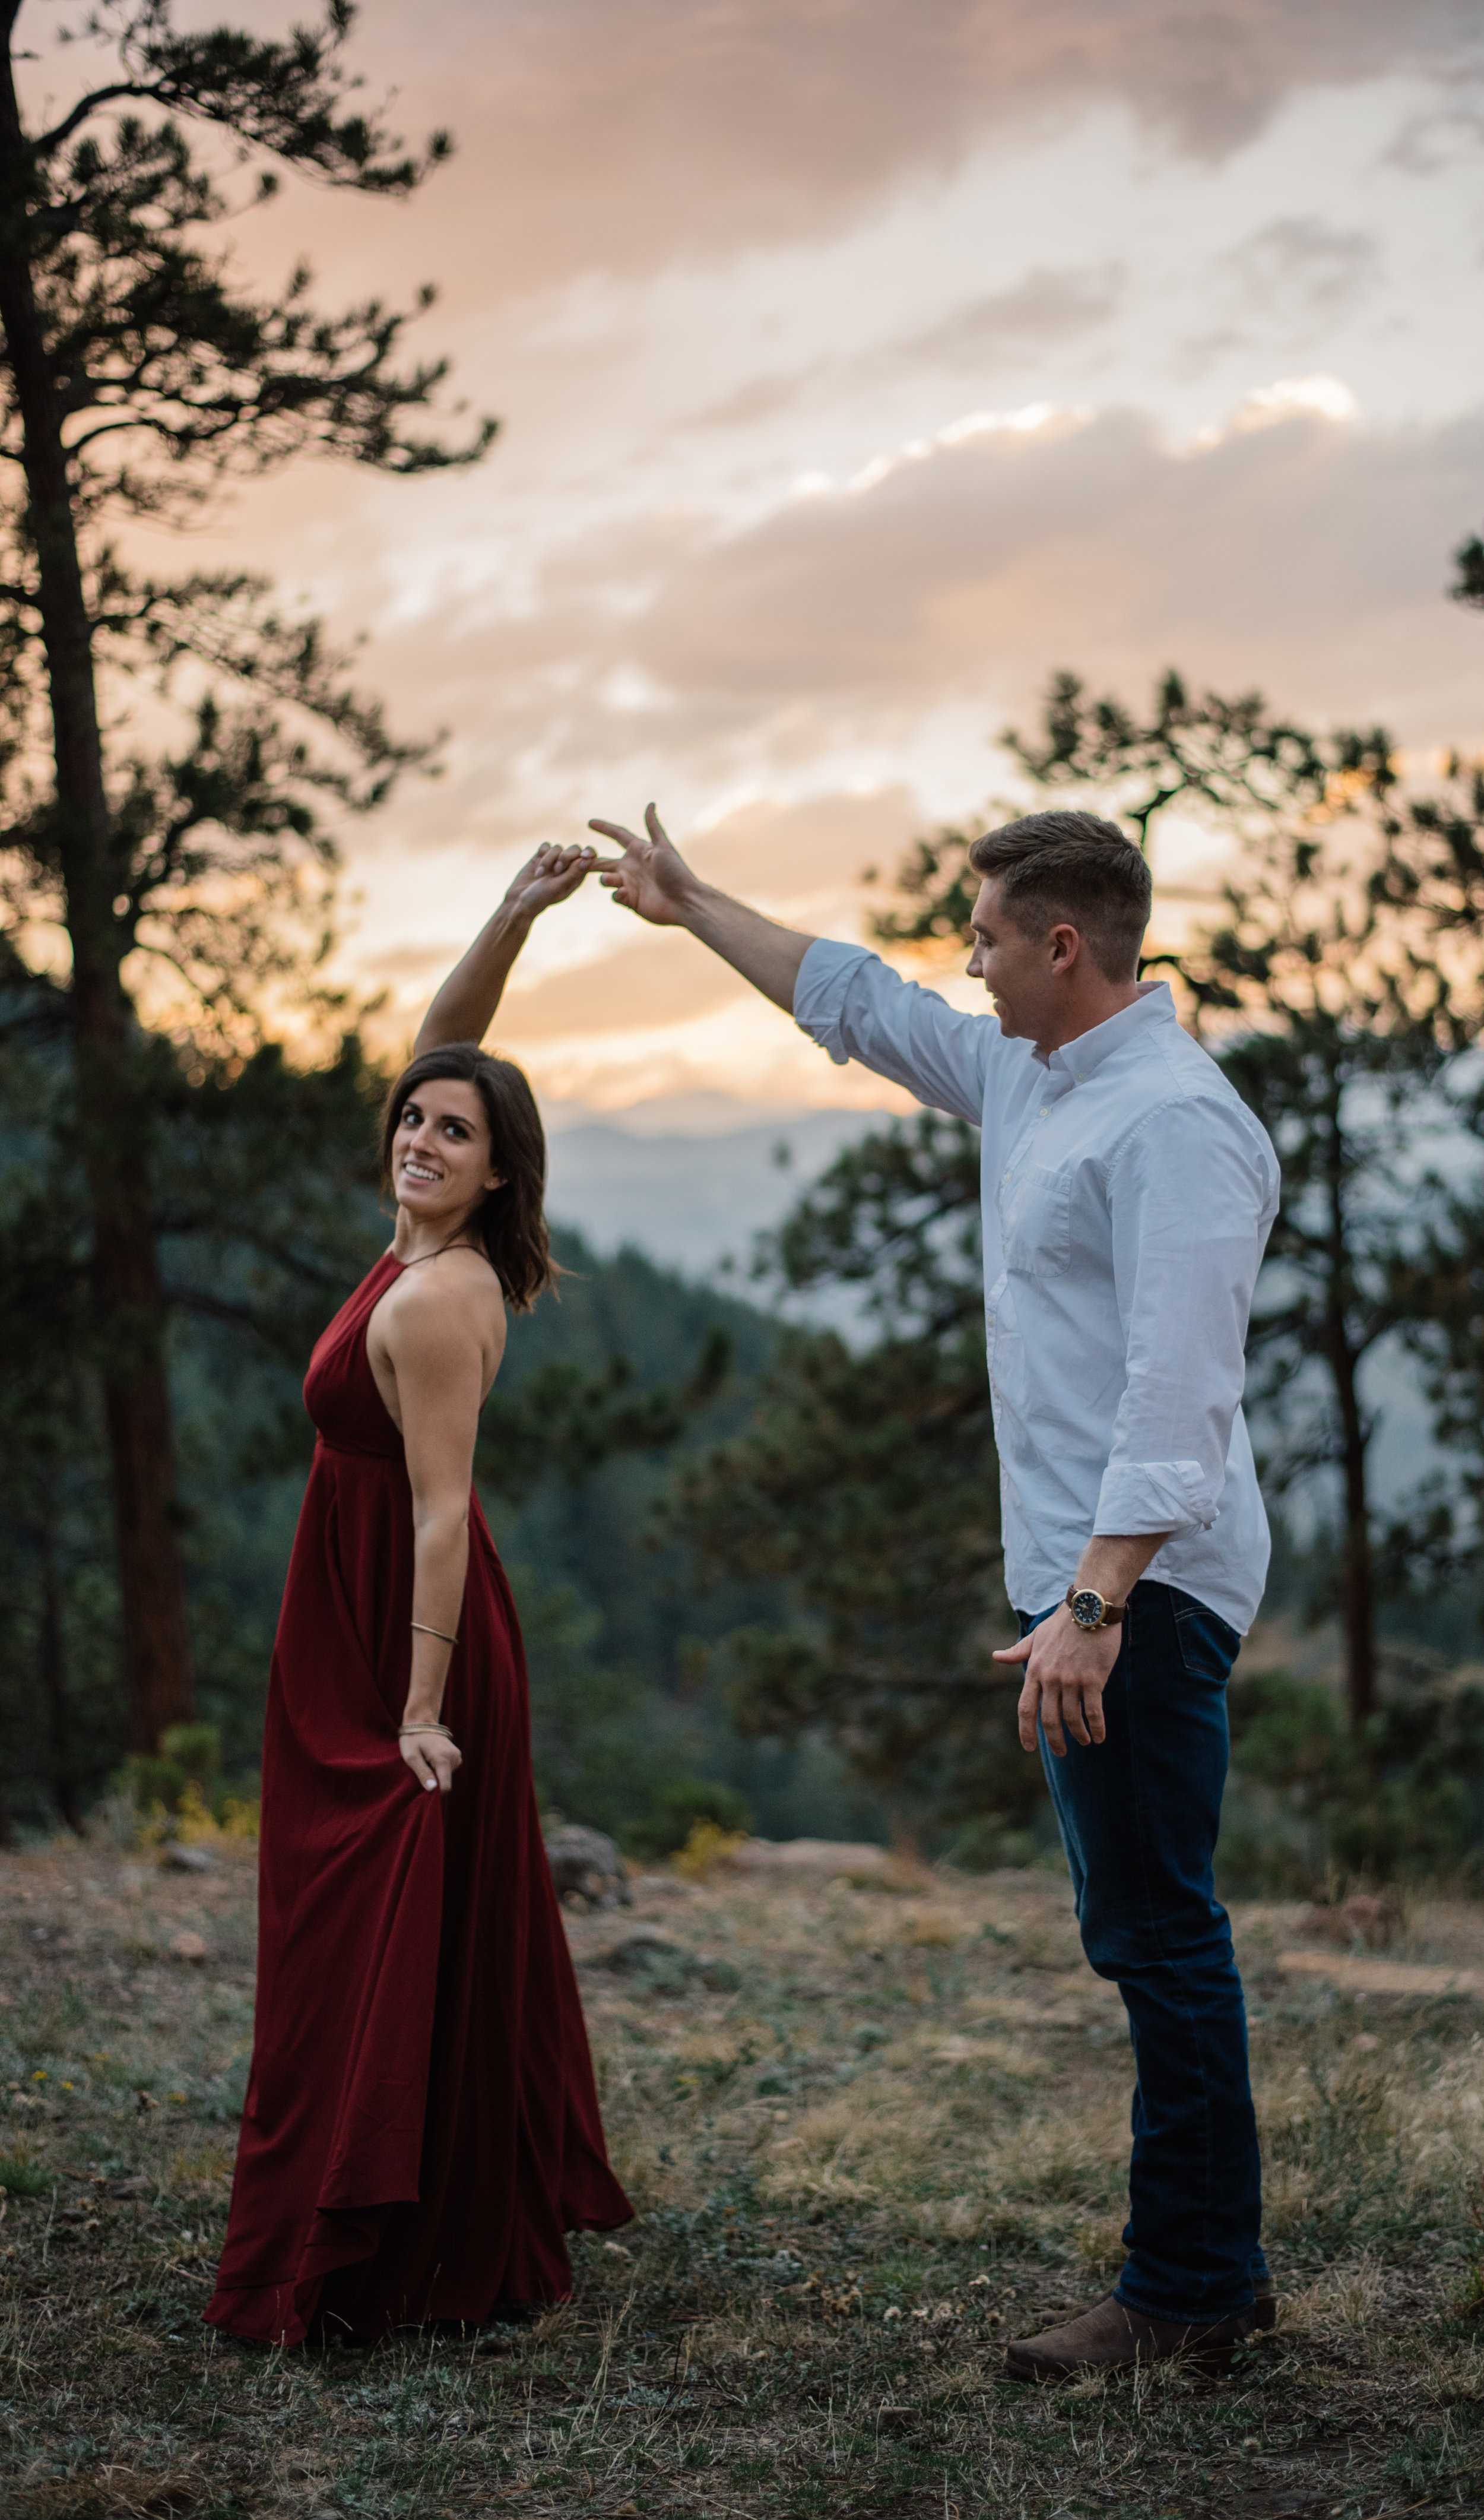 Colorado elopement photographer. Denver wedding photographer. Mountain elopement photographer.